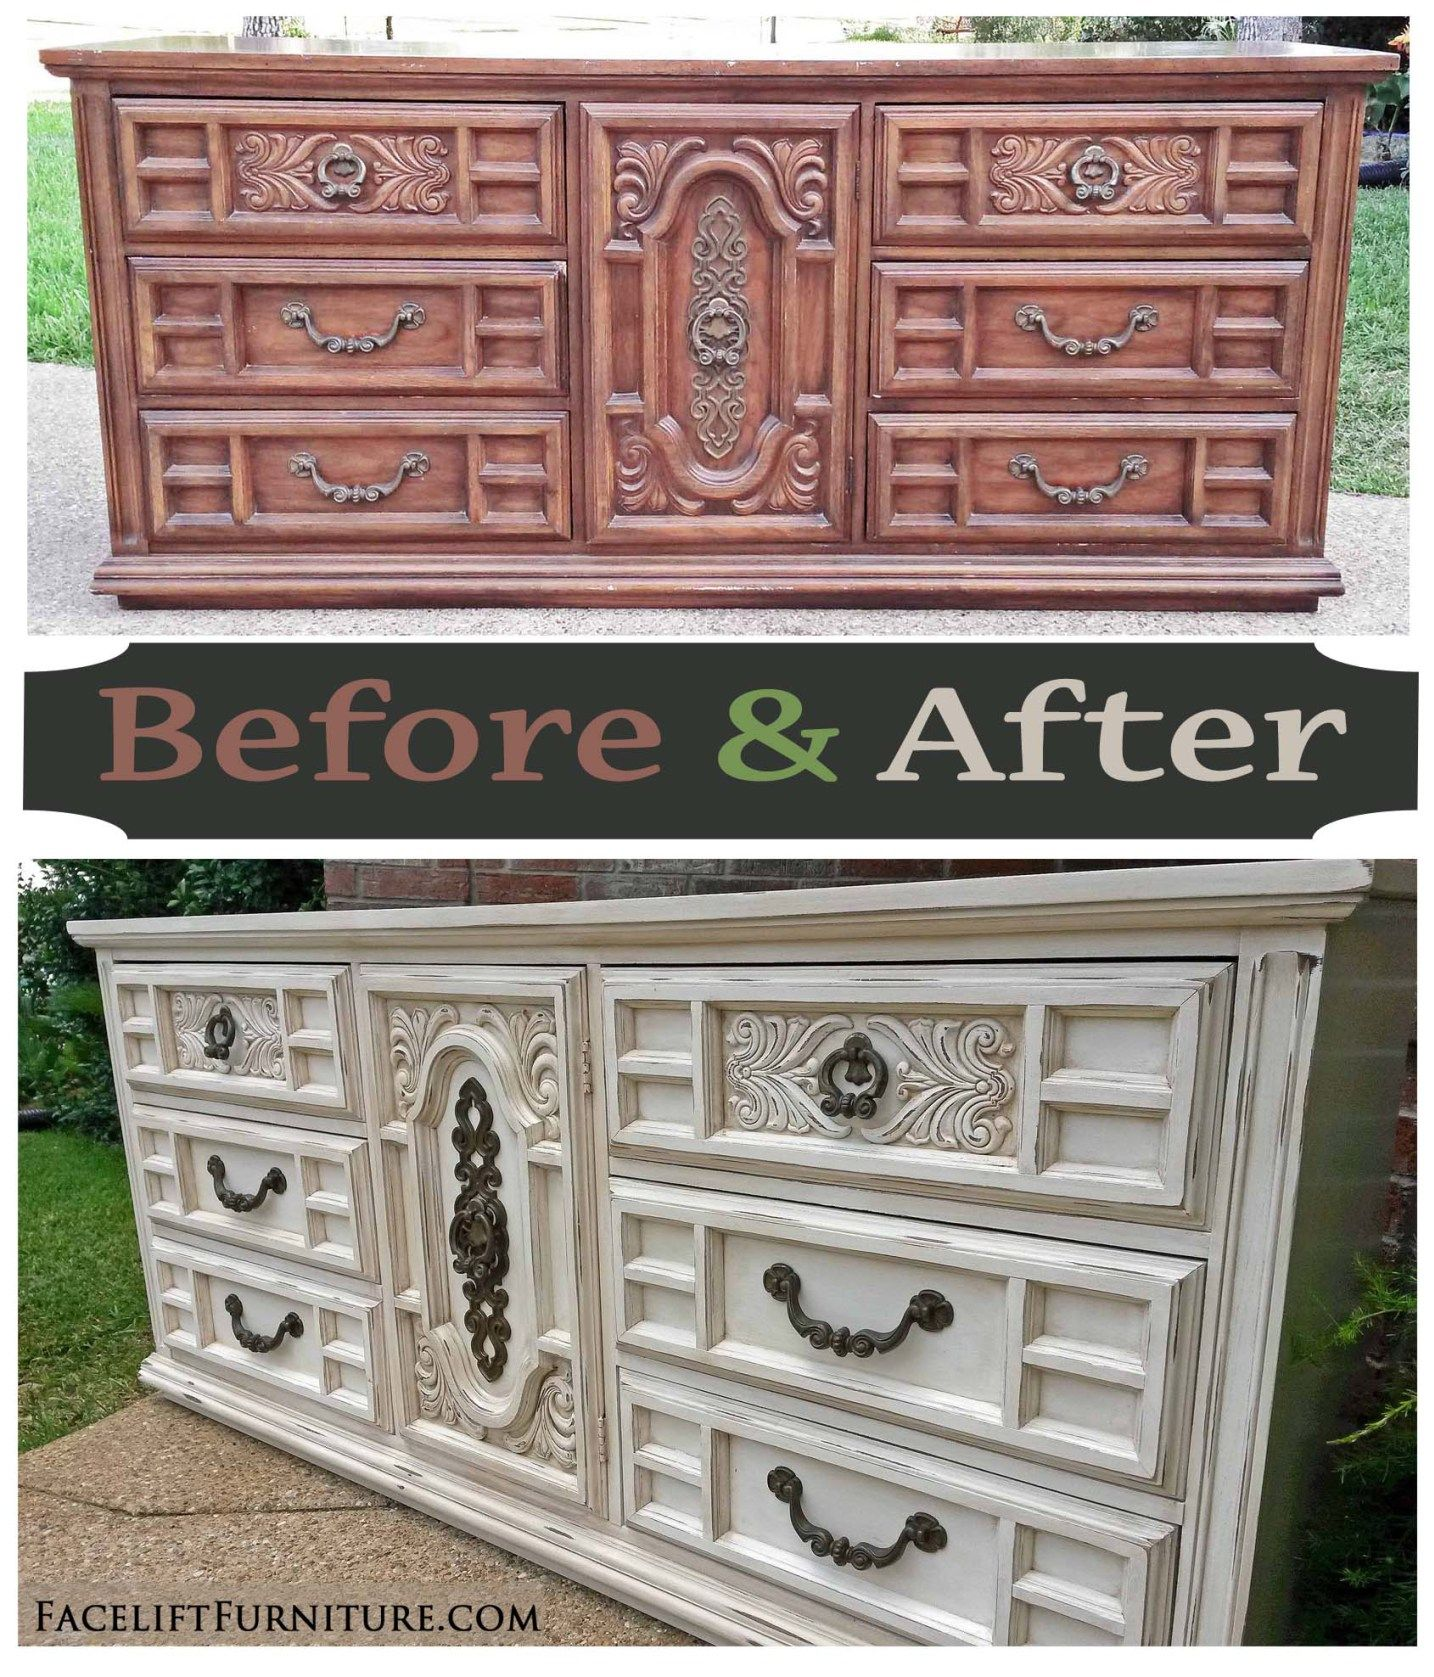 Decorating With Distressed Furniture: Ornate Vintage Dresser In Distressed Off White